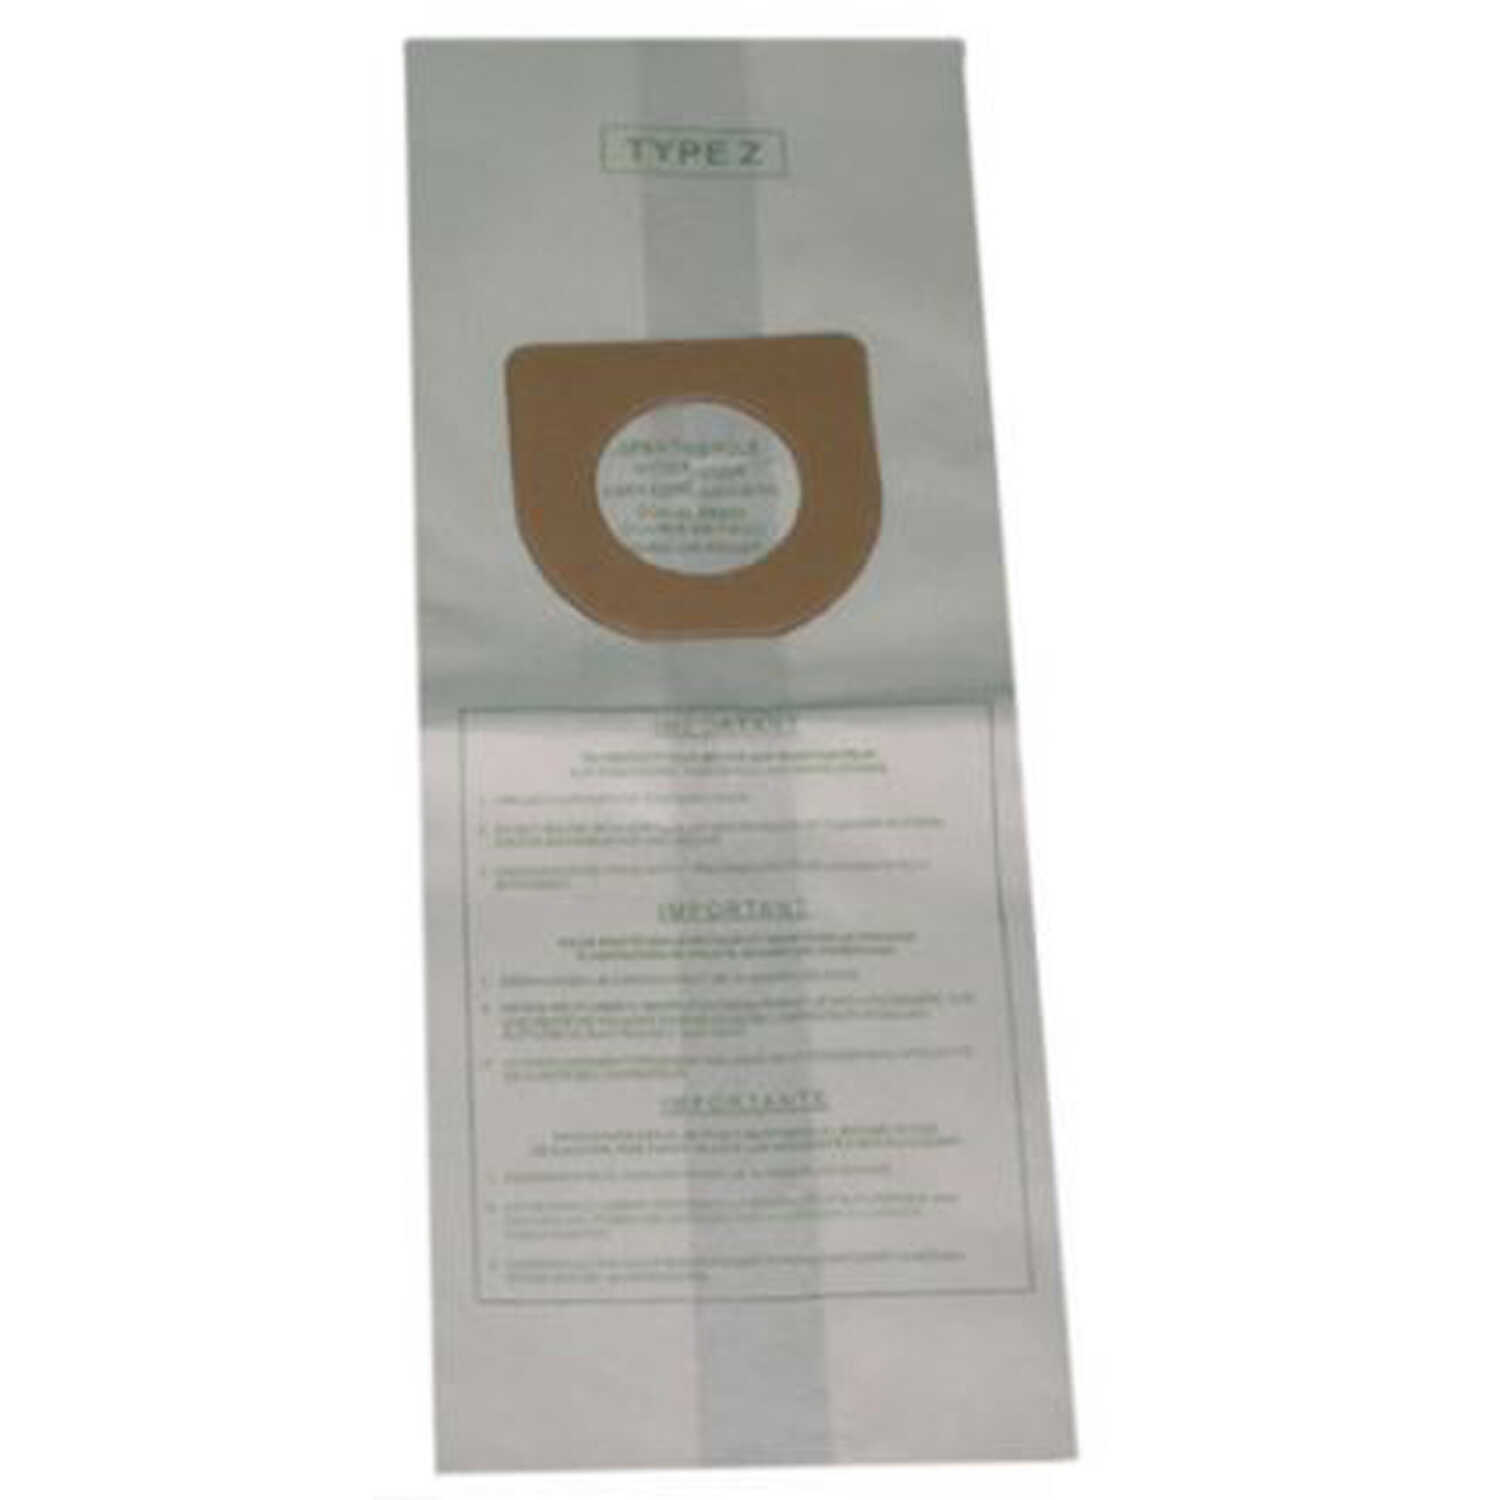 Hoover  Vacuum Bag  For Fits Hoover upright cleaners including the power drive. 3 pk